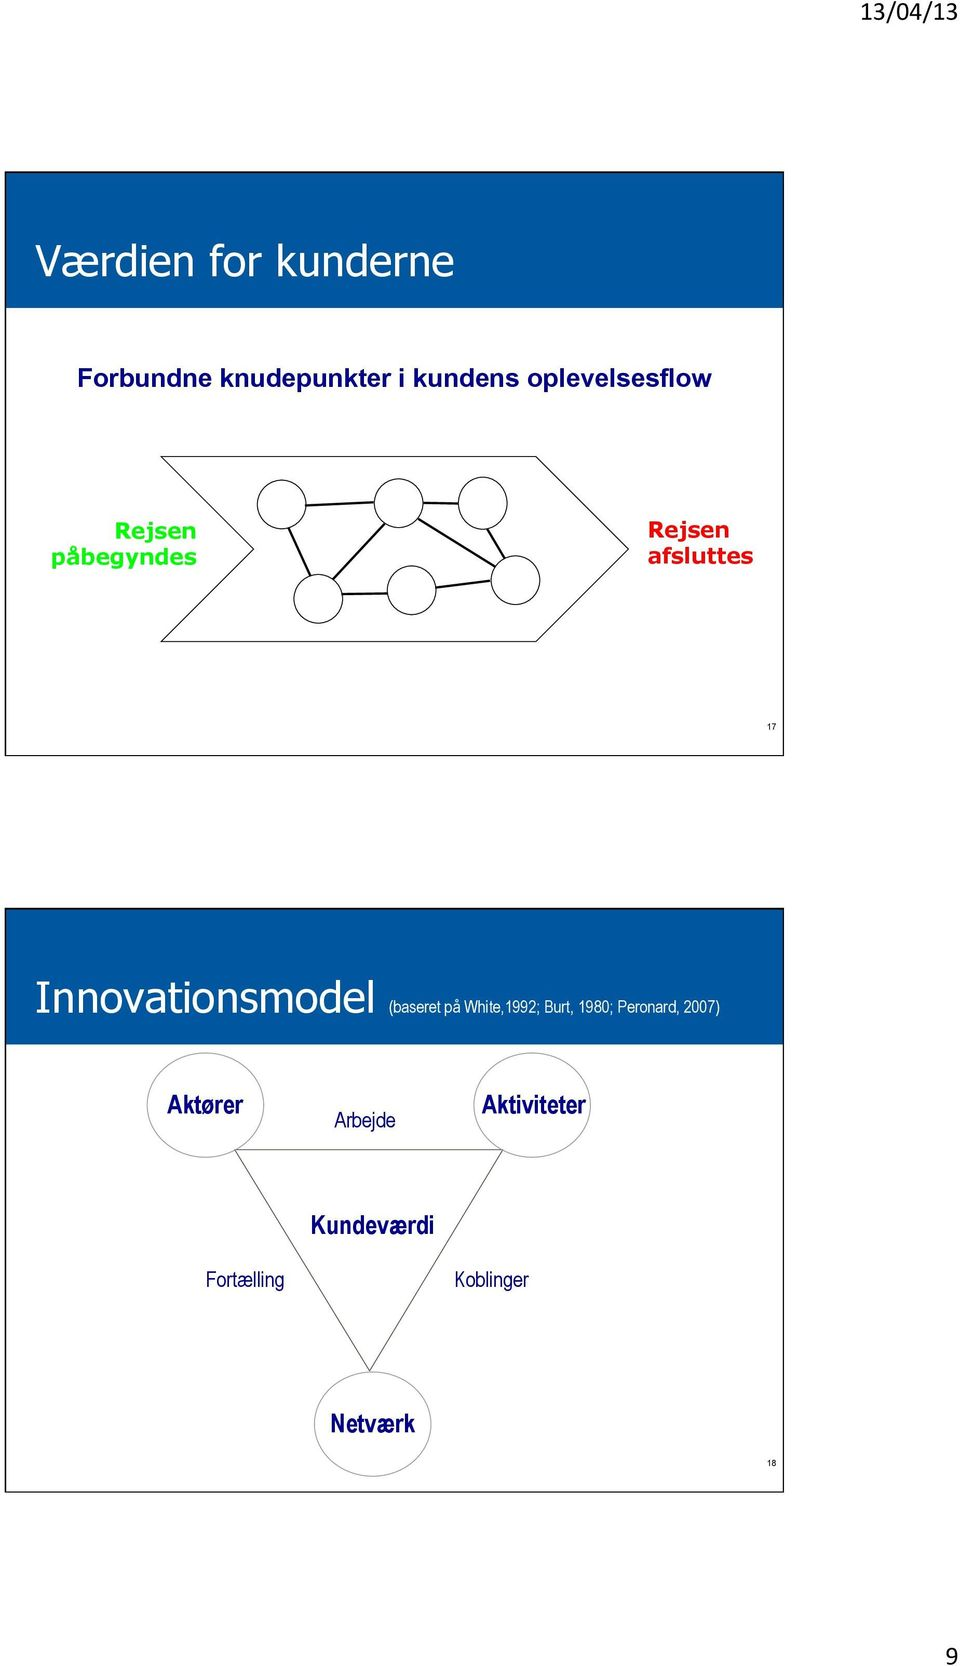 Innovationsmodel (baseret på White,1992; Burt, 1980;